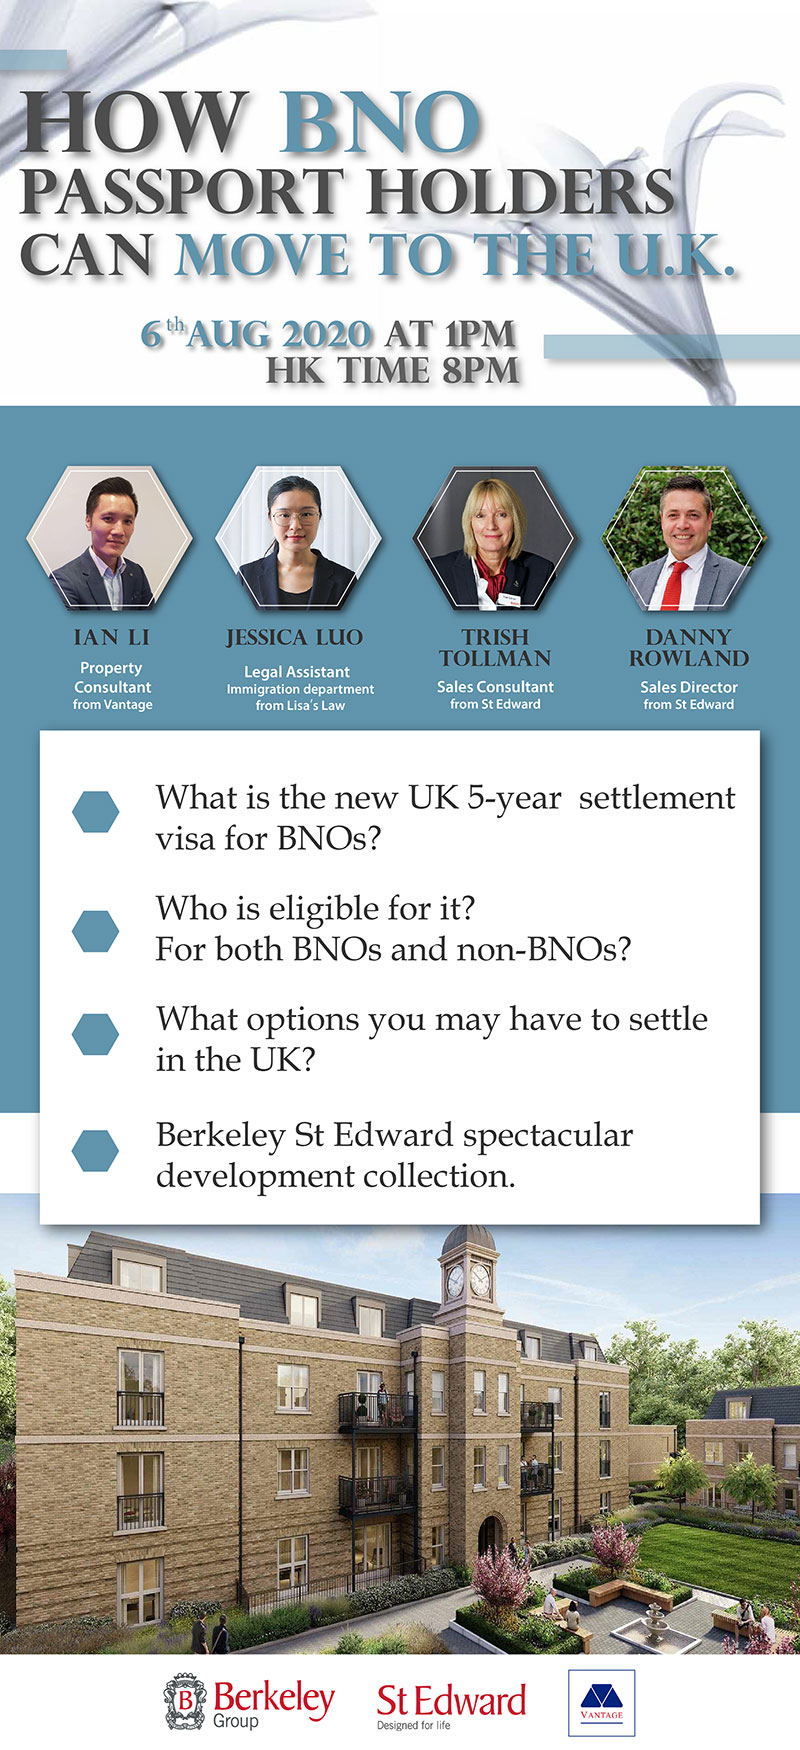 How BNO holders are able to move to the U.K